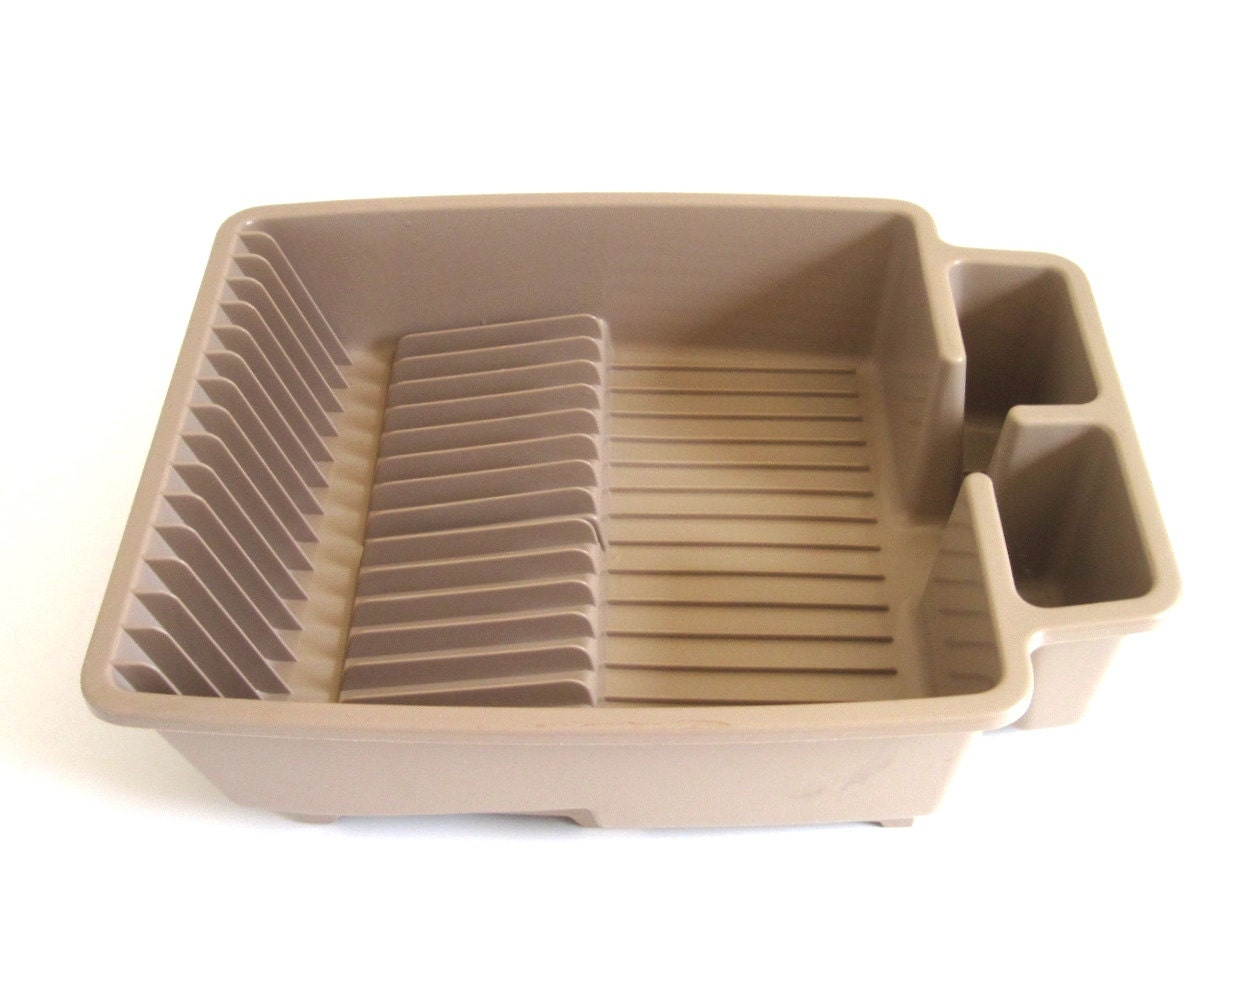 One Piece Plastic Dish Drying Rack Beige Unmarked Similar To